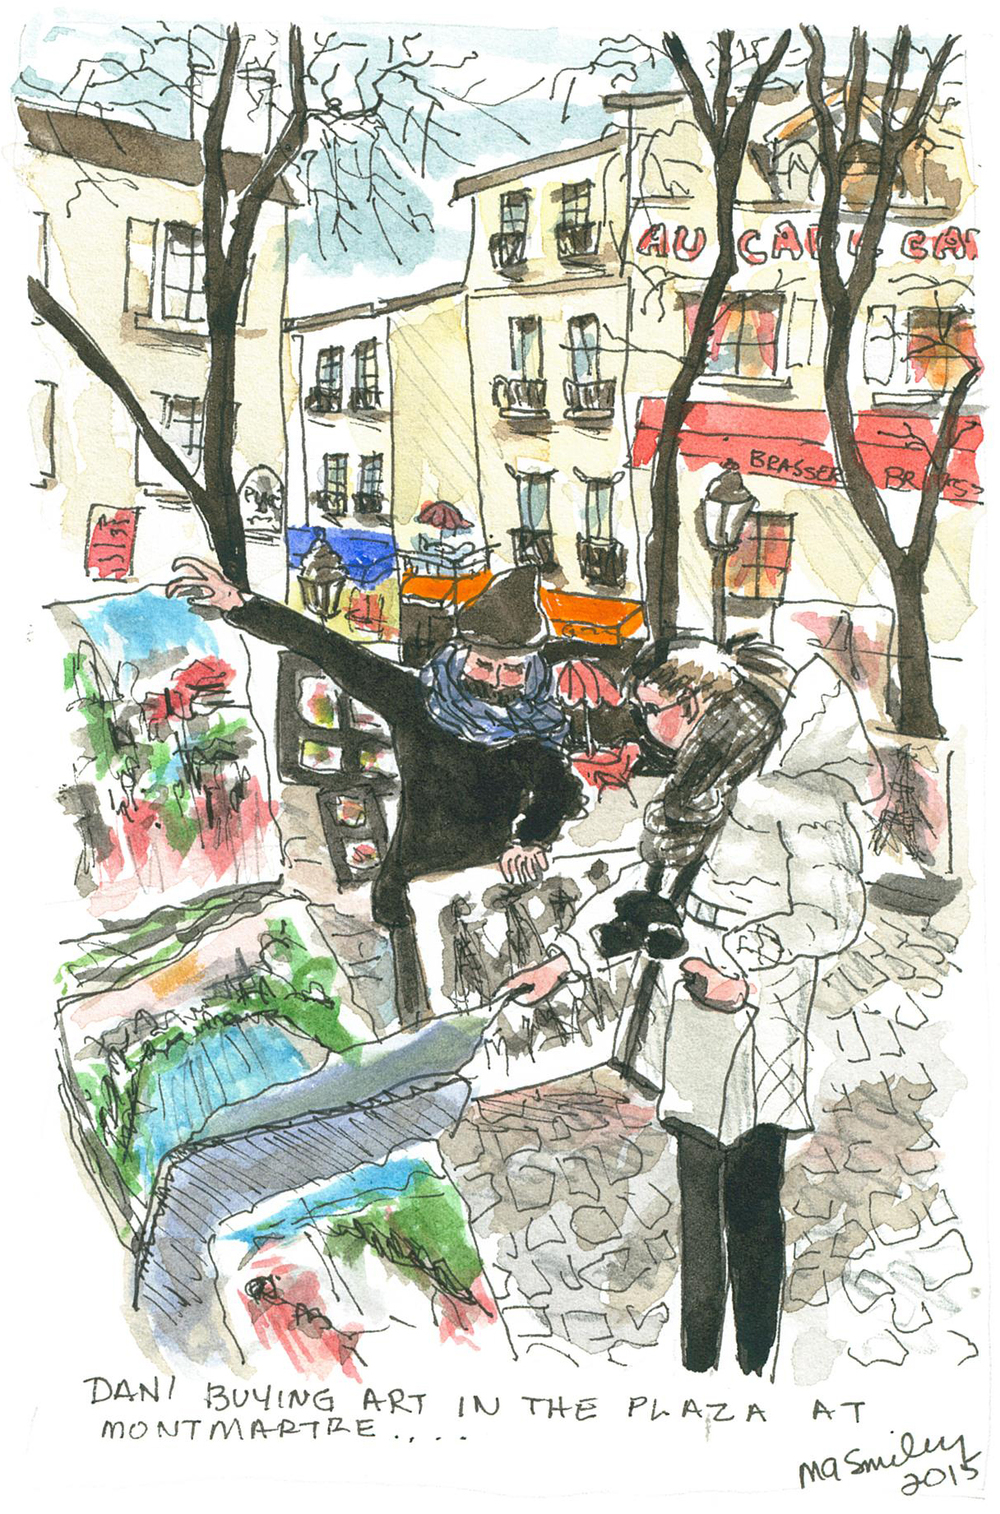 Art at MontMartre